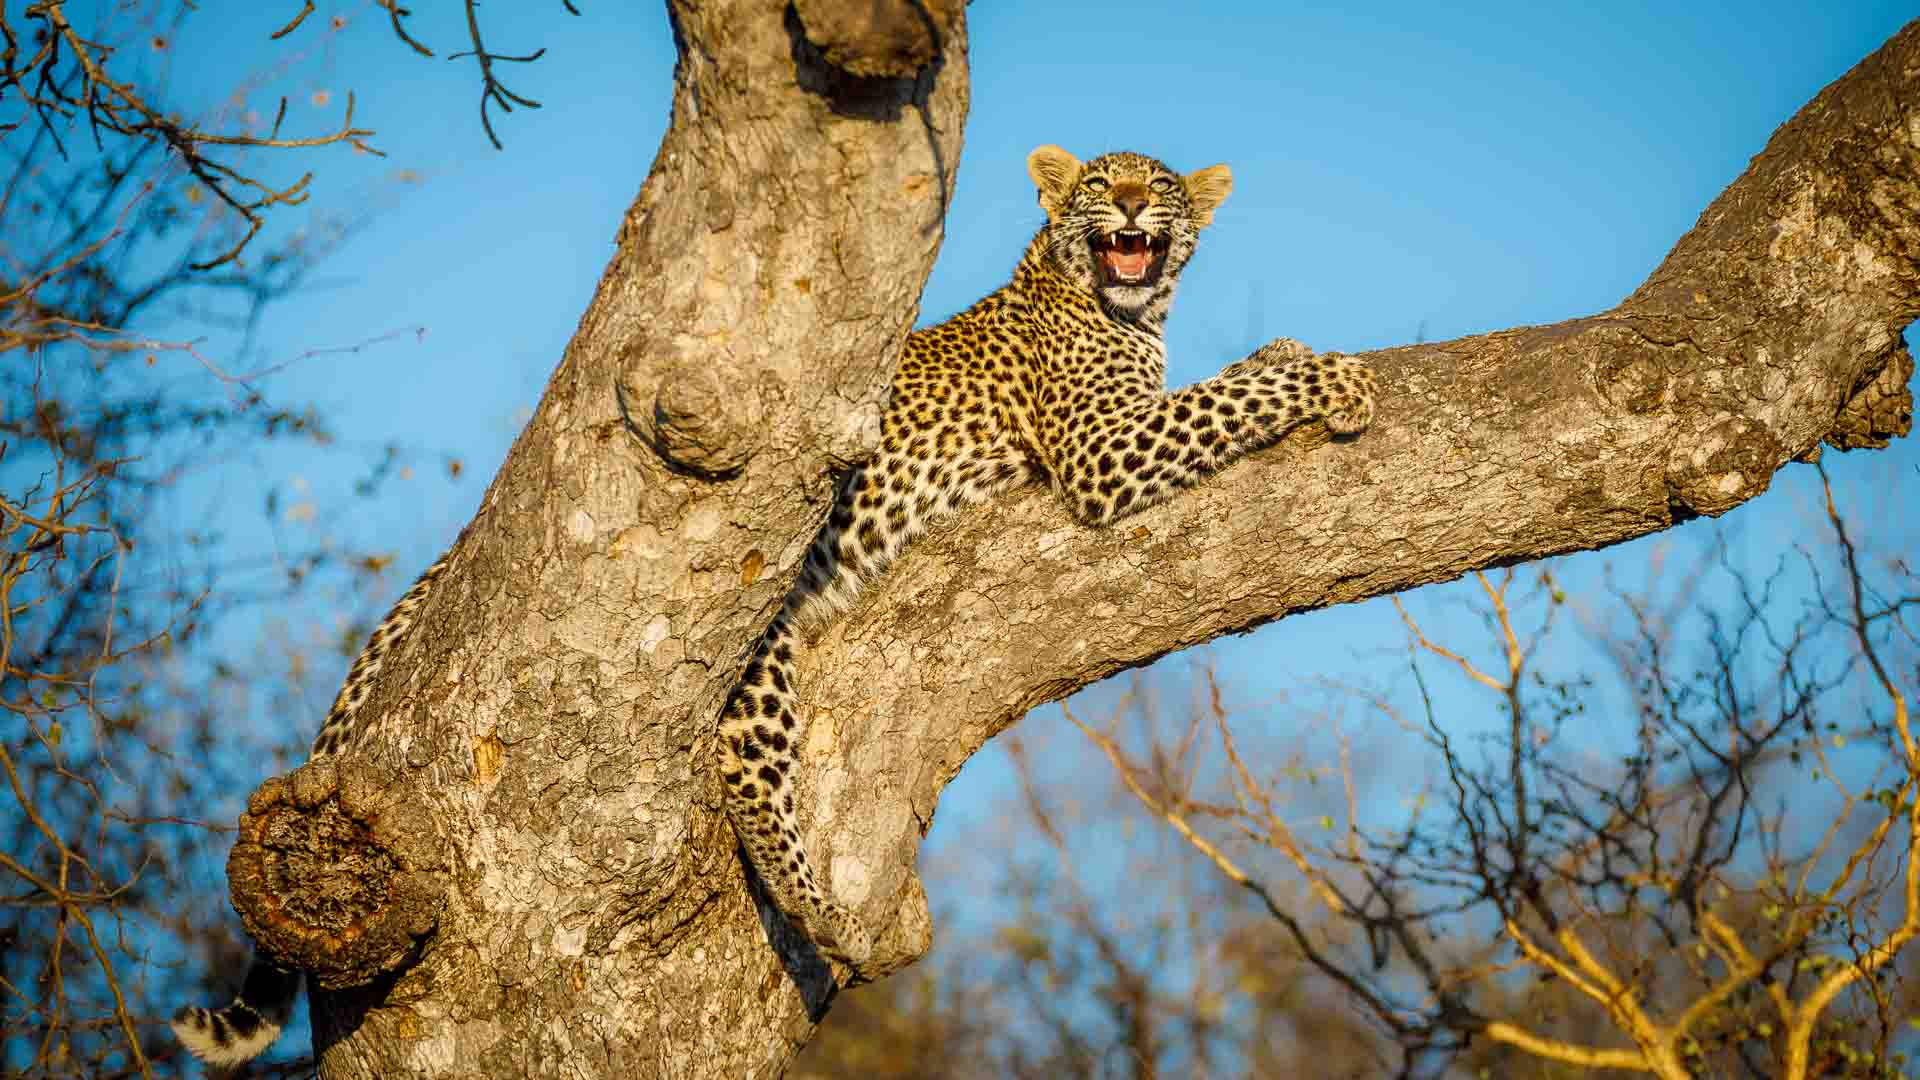 Leopard lying on a tree branch at Tanda Tula in the Timbavati Game Reserve, part of the Greater Kruger National Park, South Africa - Photo credit: Chad Cocking